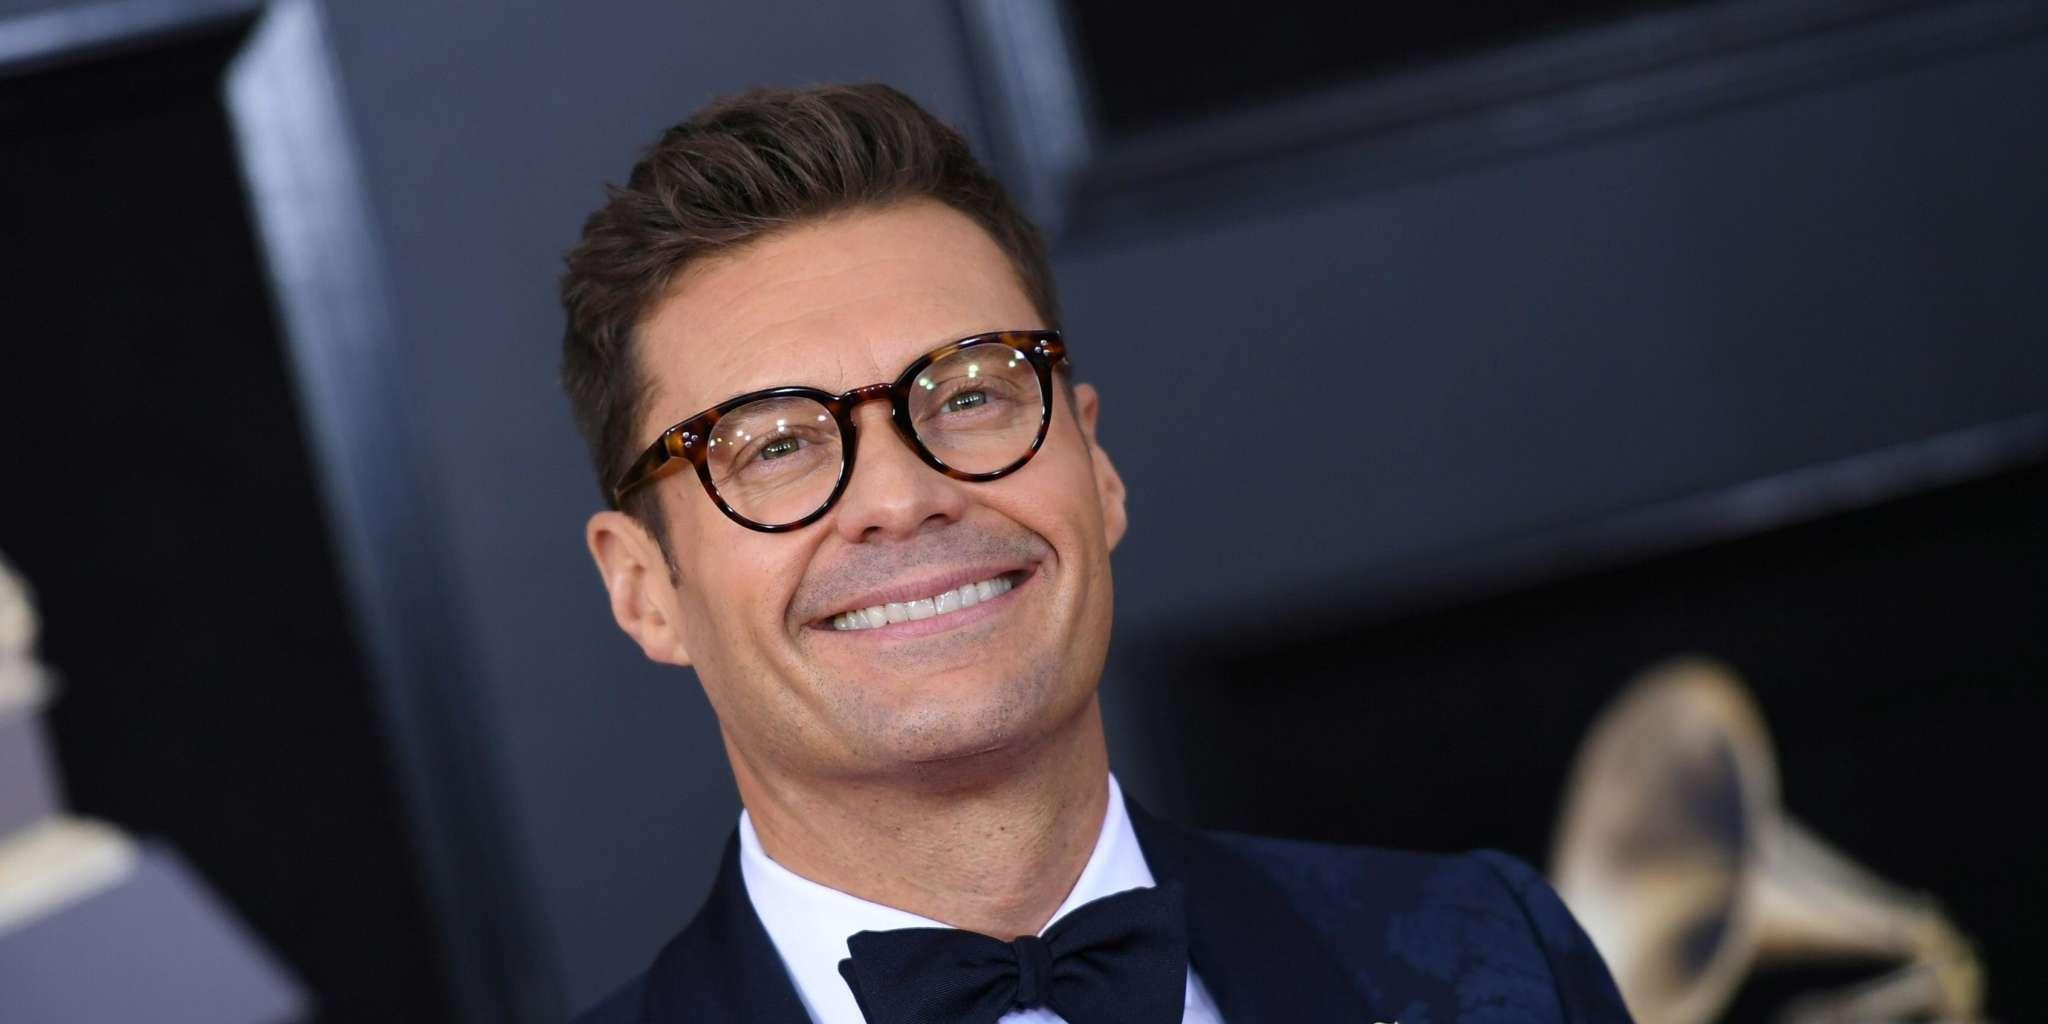 Ryan Seacrest Takes A Tumble On His Live Show - See Him Fall Backwards Along With His Chair!